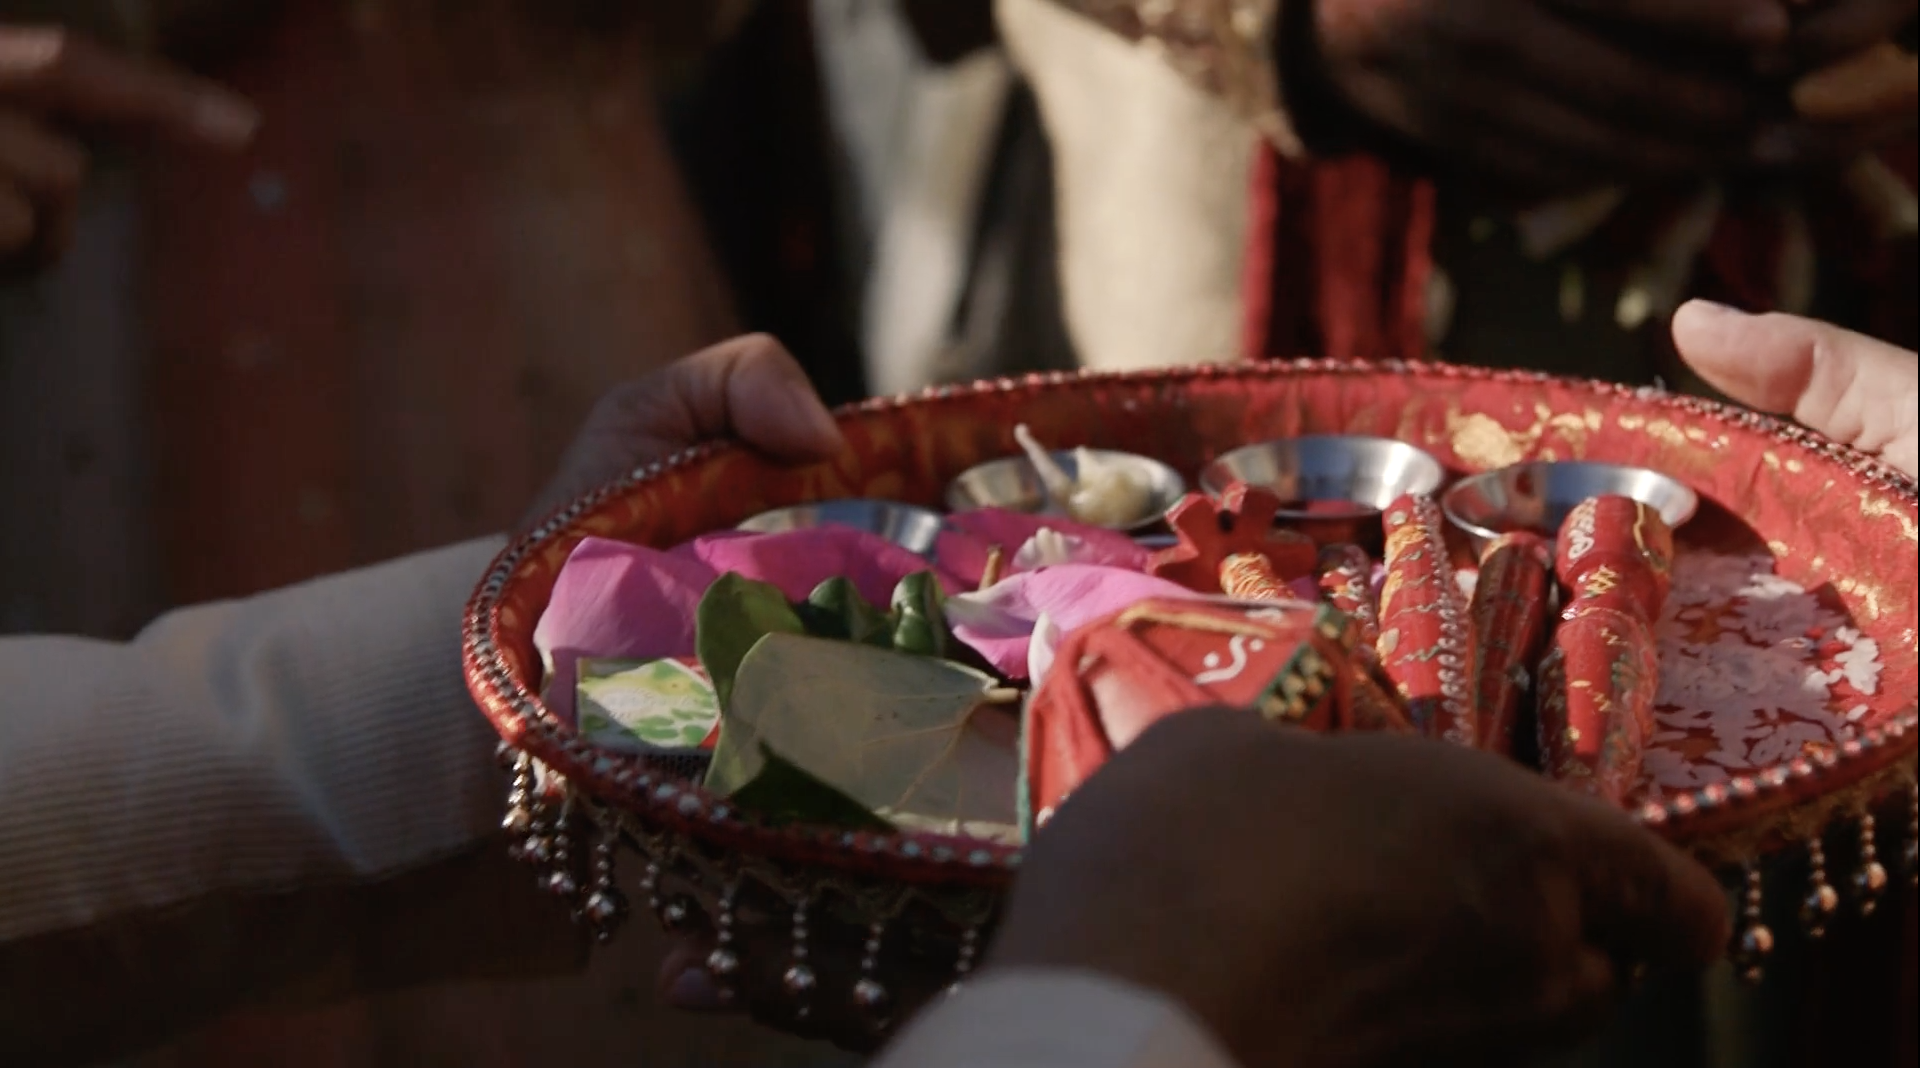 indian-wedding-red-tray-with-flower-petals.png